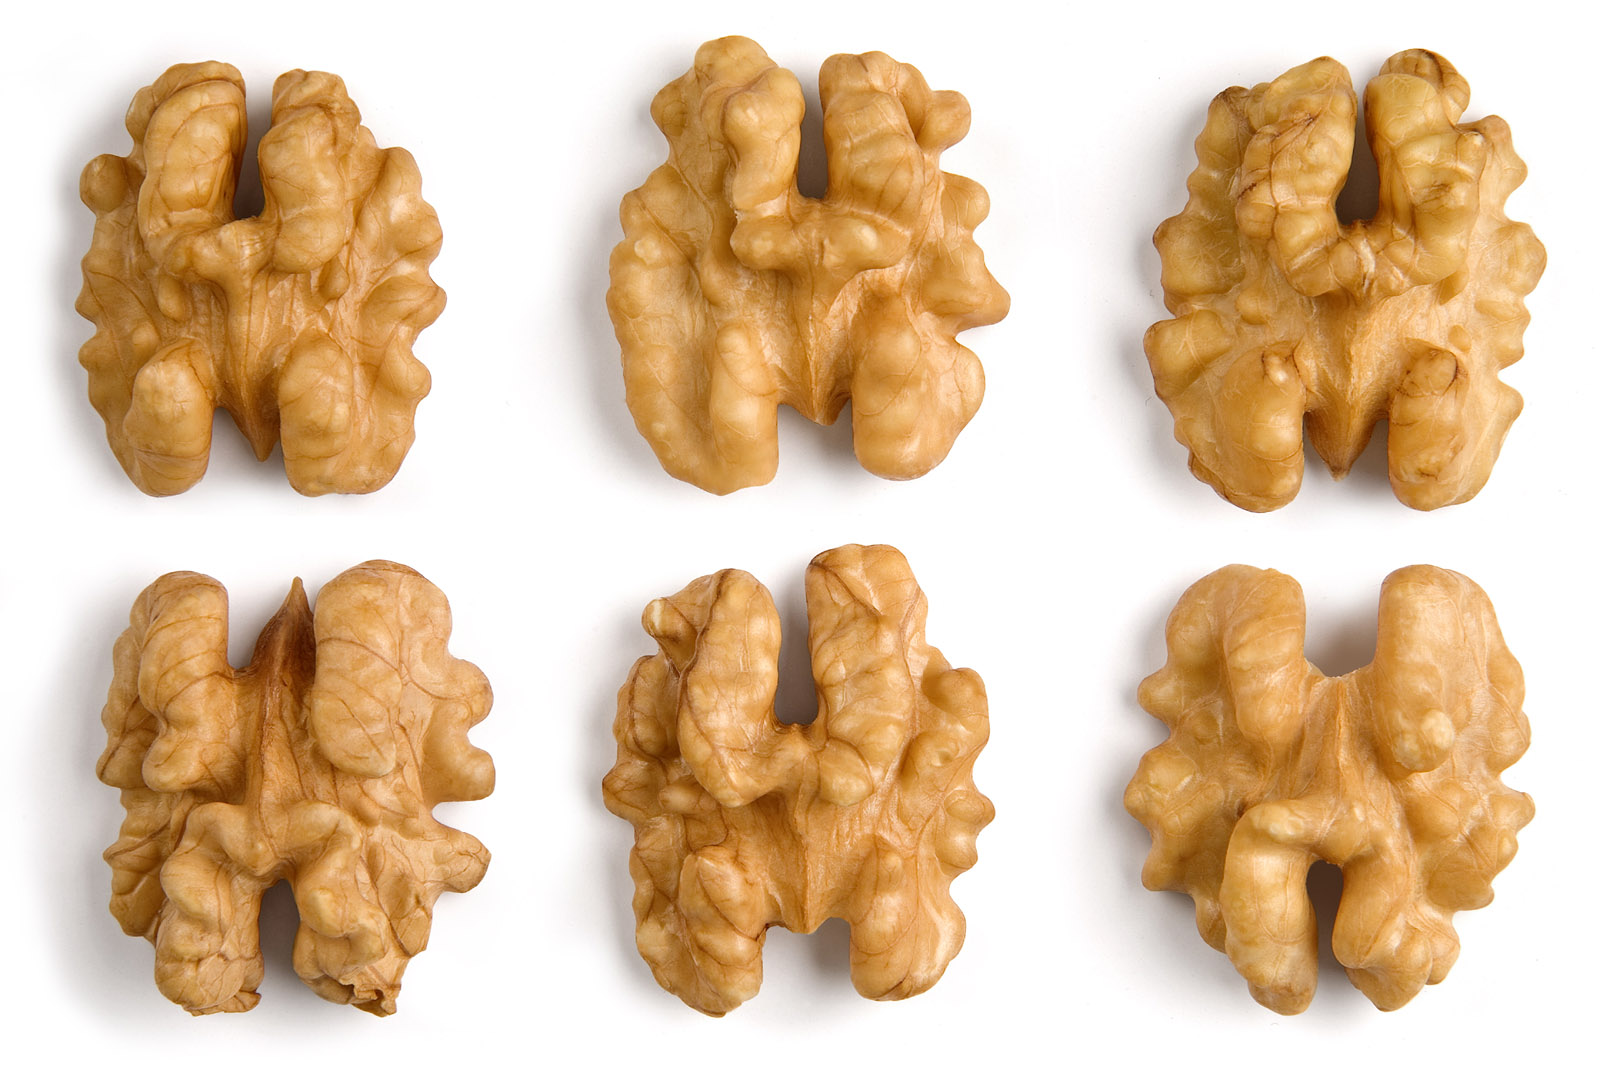 Actually, walnuts are full of omega-3 fatty acids, that's why they're good for brain health, but points for effort, folks.